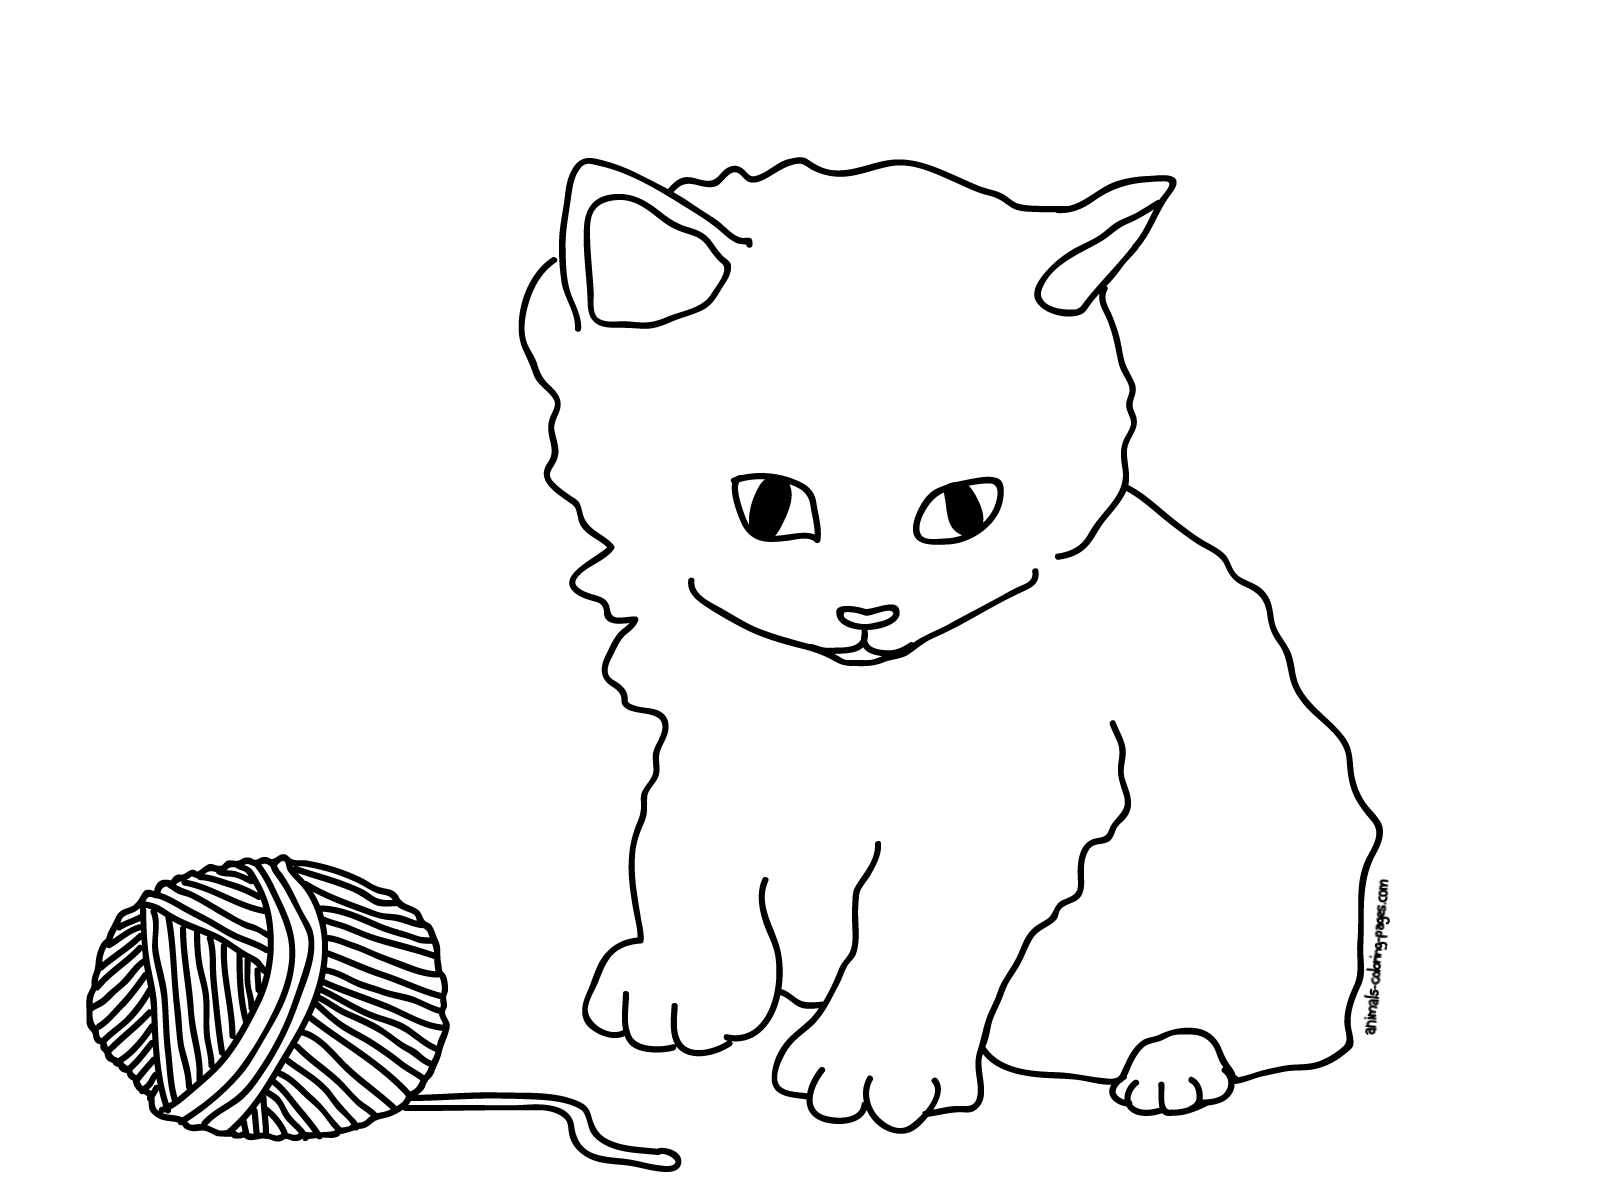 picture of a cat to color coloring pages cats and kittens coloring pages free and of picture a color cat to